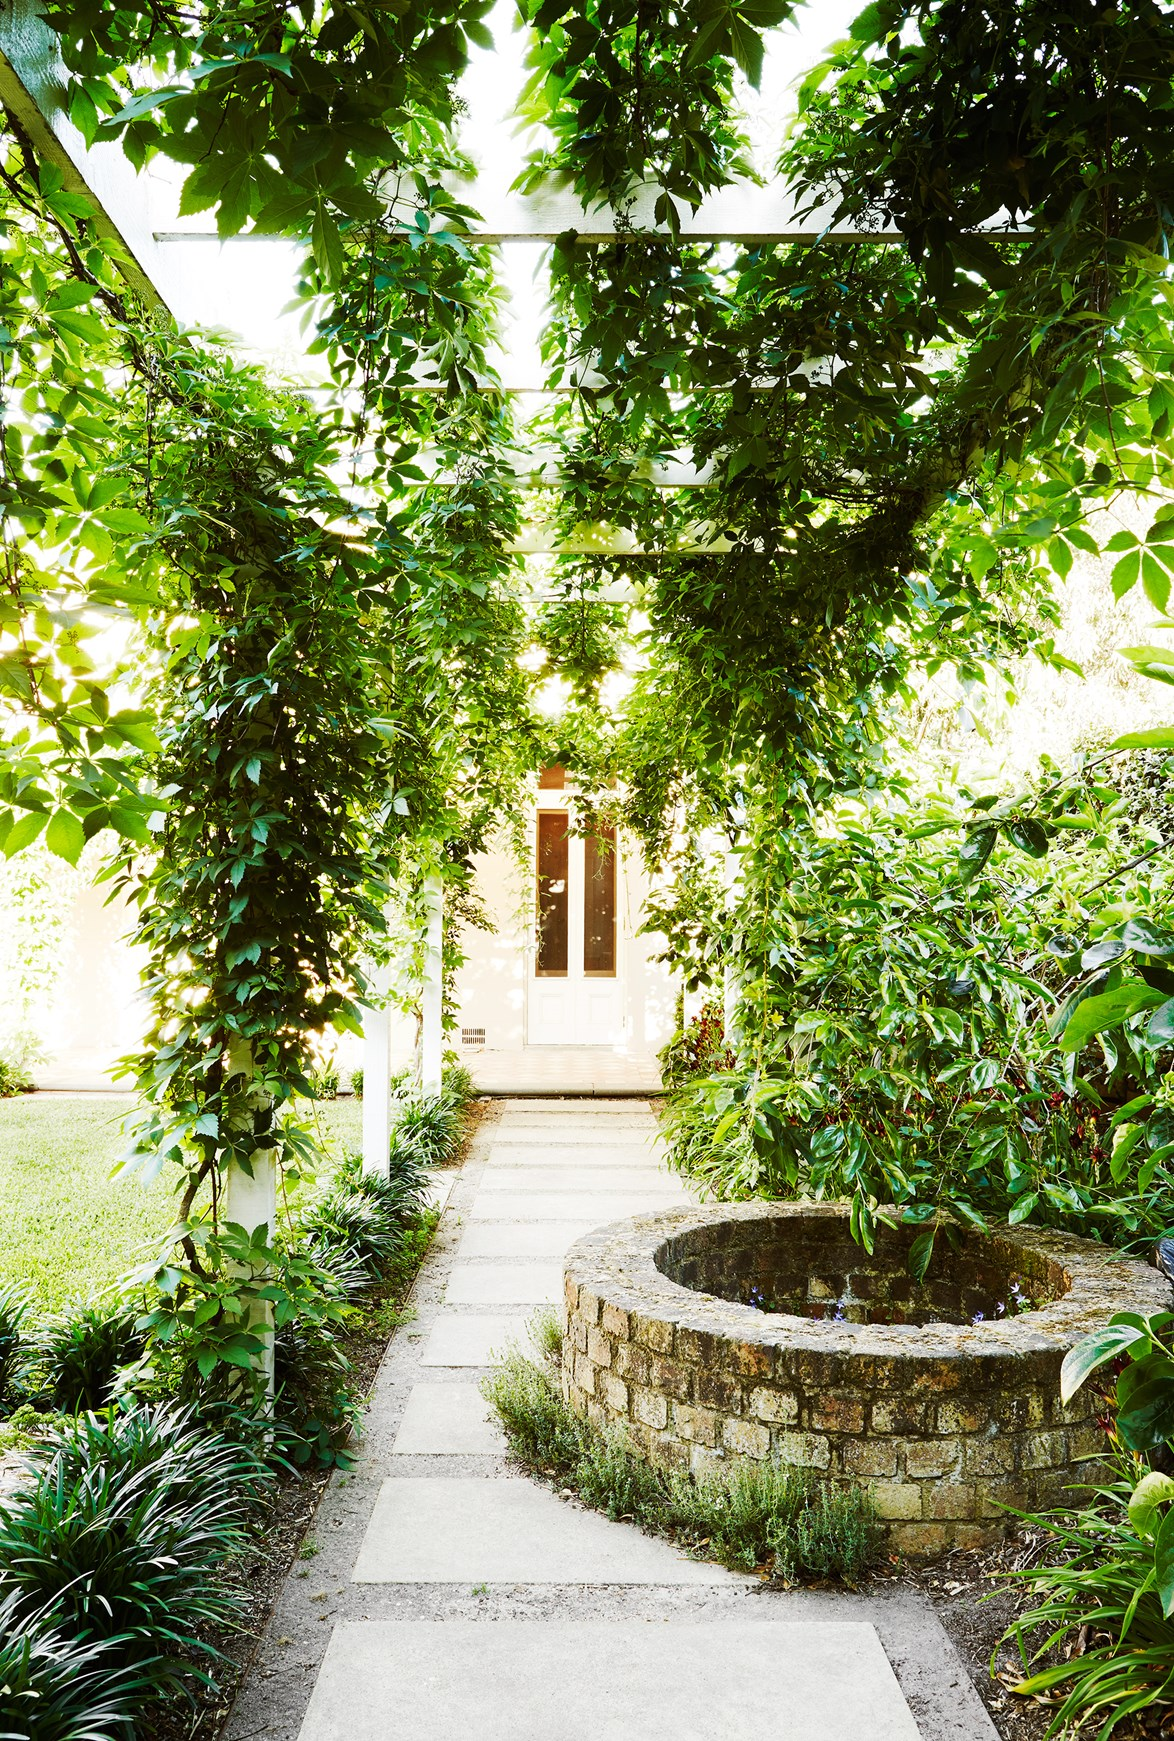 """For owners Marg and Rob, this [restored 19th Century garden](https://www.homestolove.com.au/19th-century-garden-restored-to-heritage-state-4210